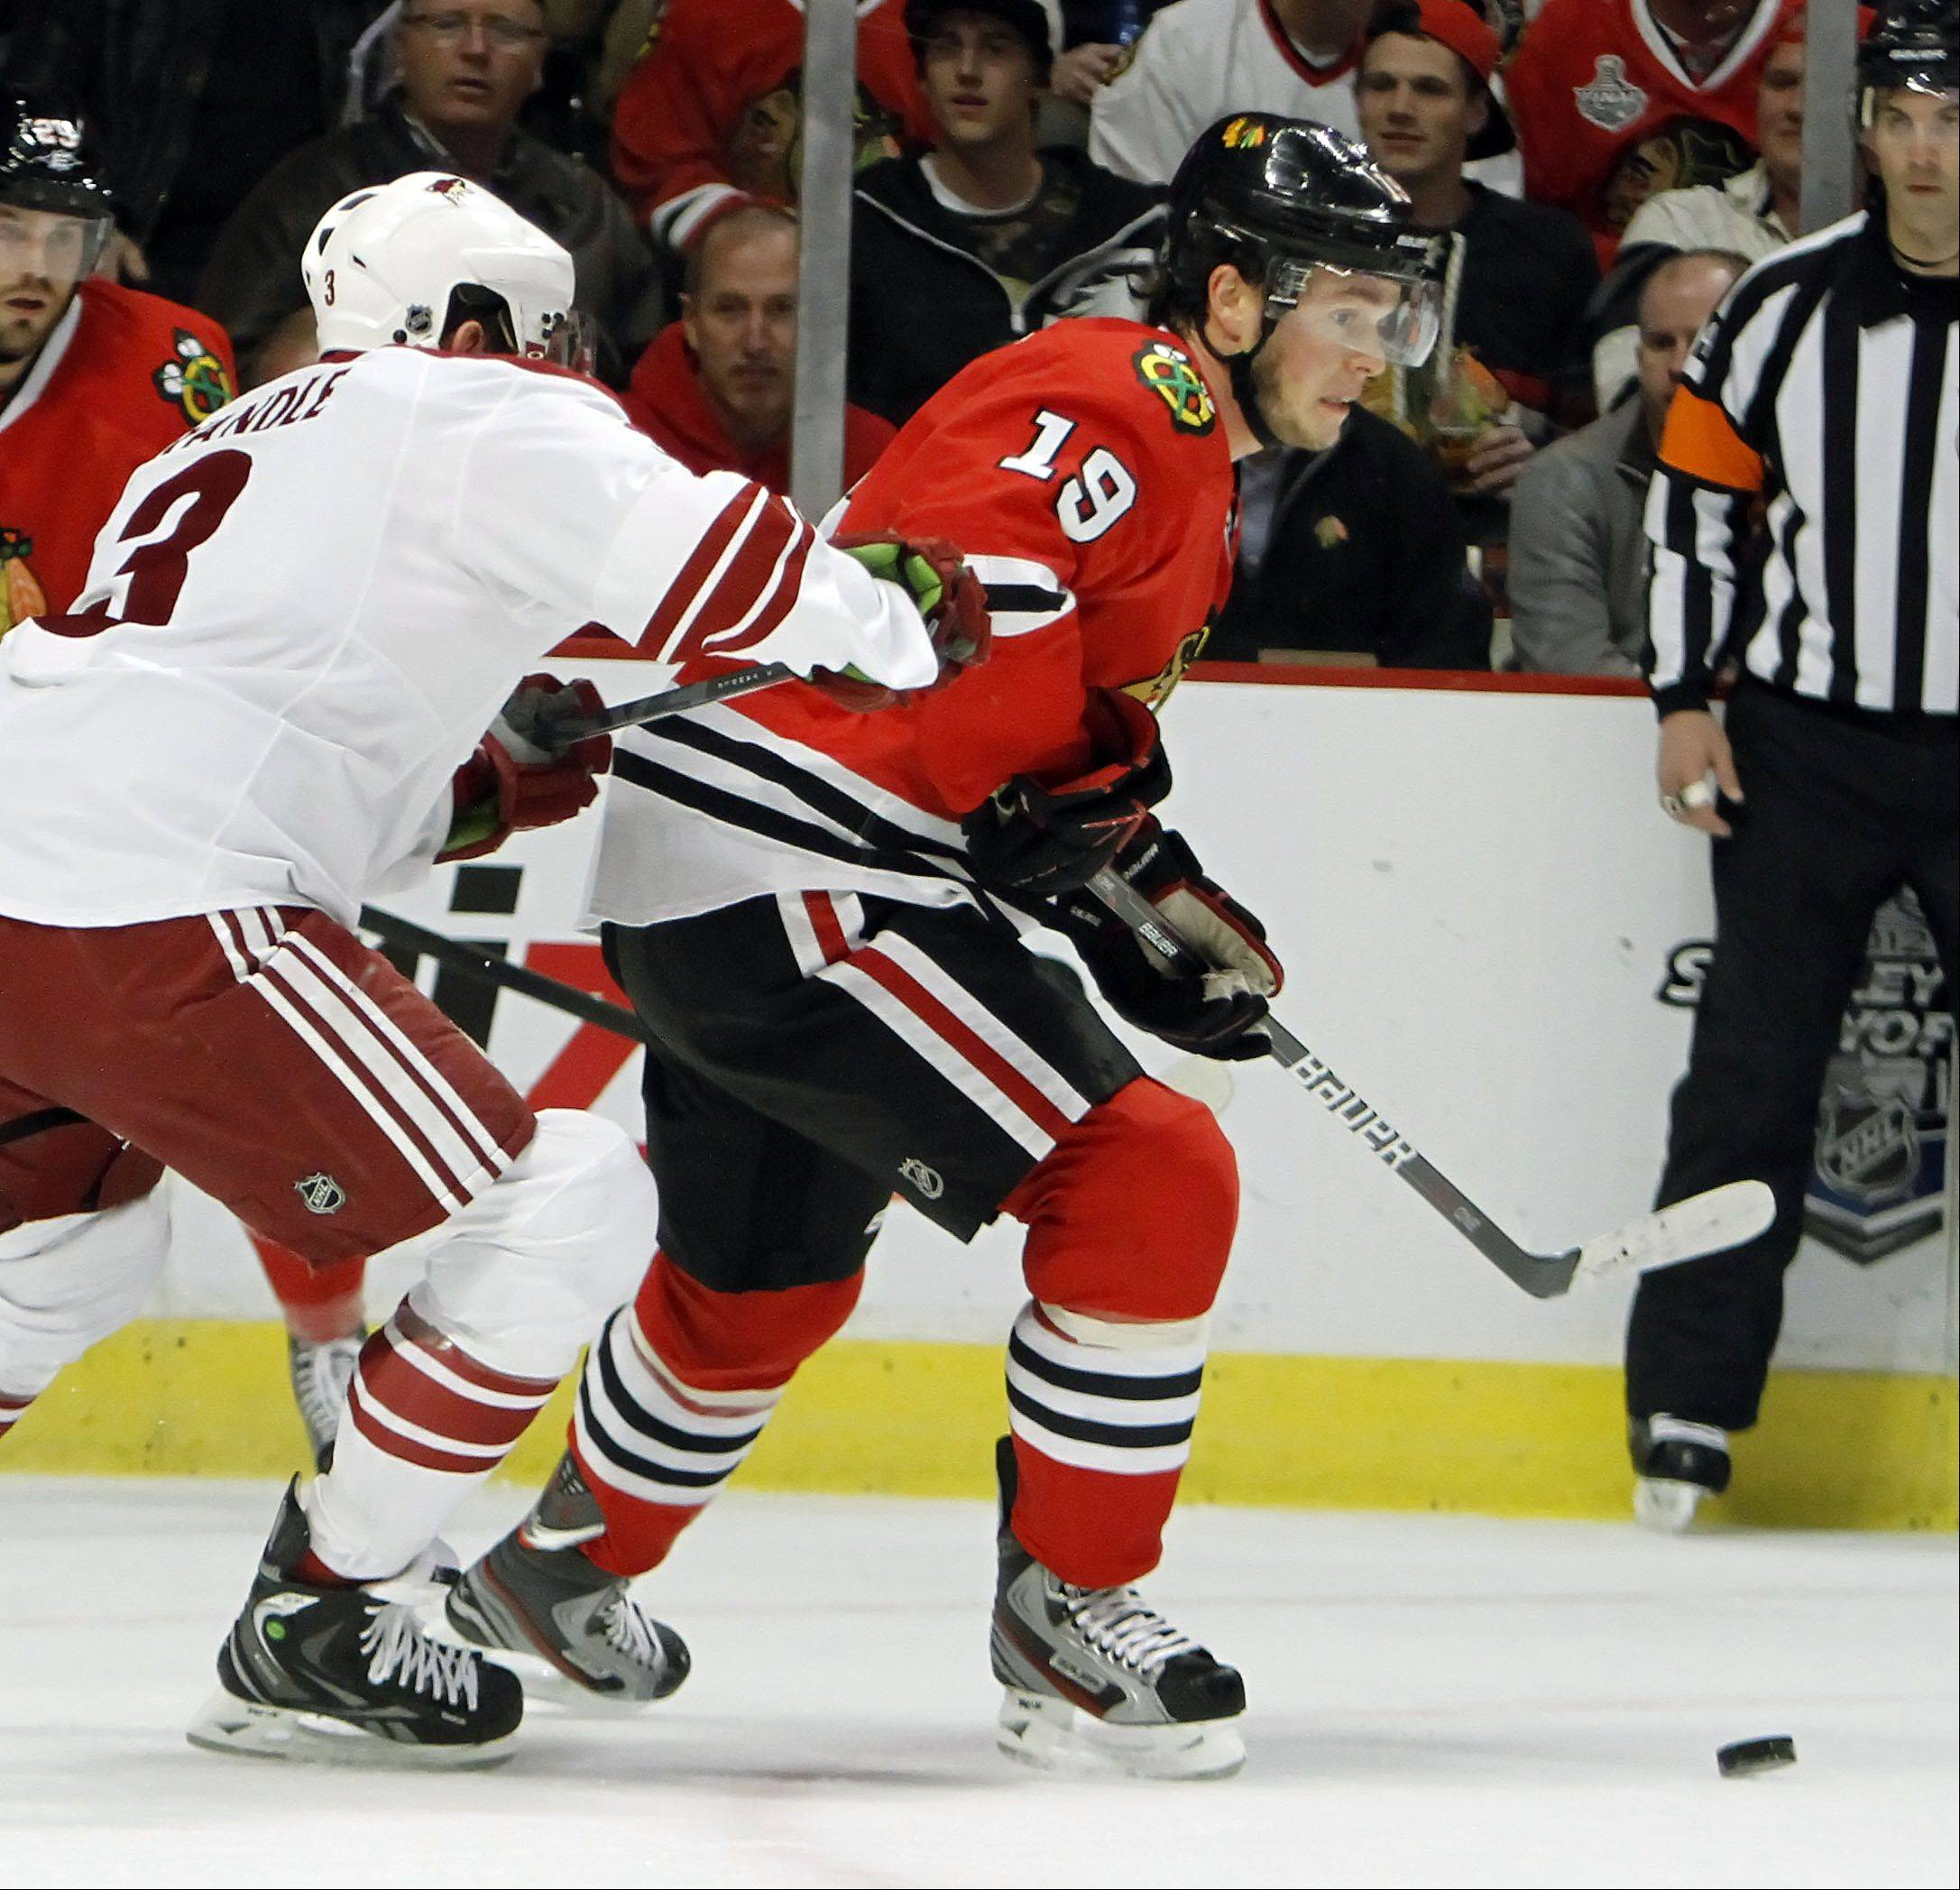 Chicago Blackhawks' center Jonathan Toews looks to shoot.